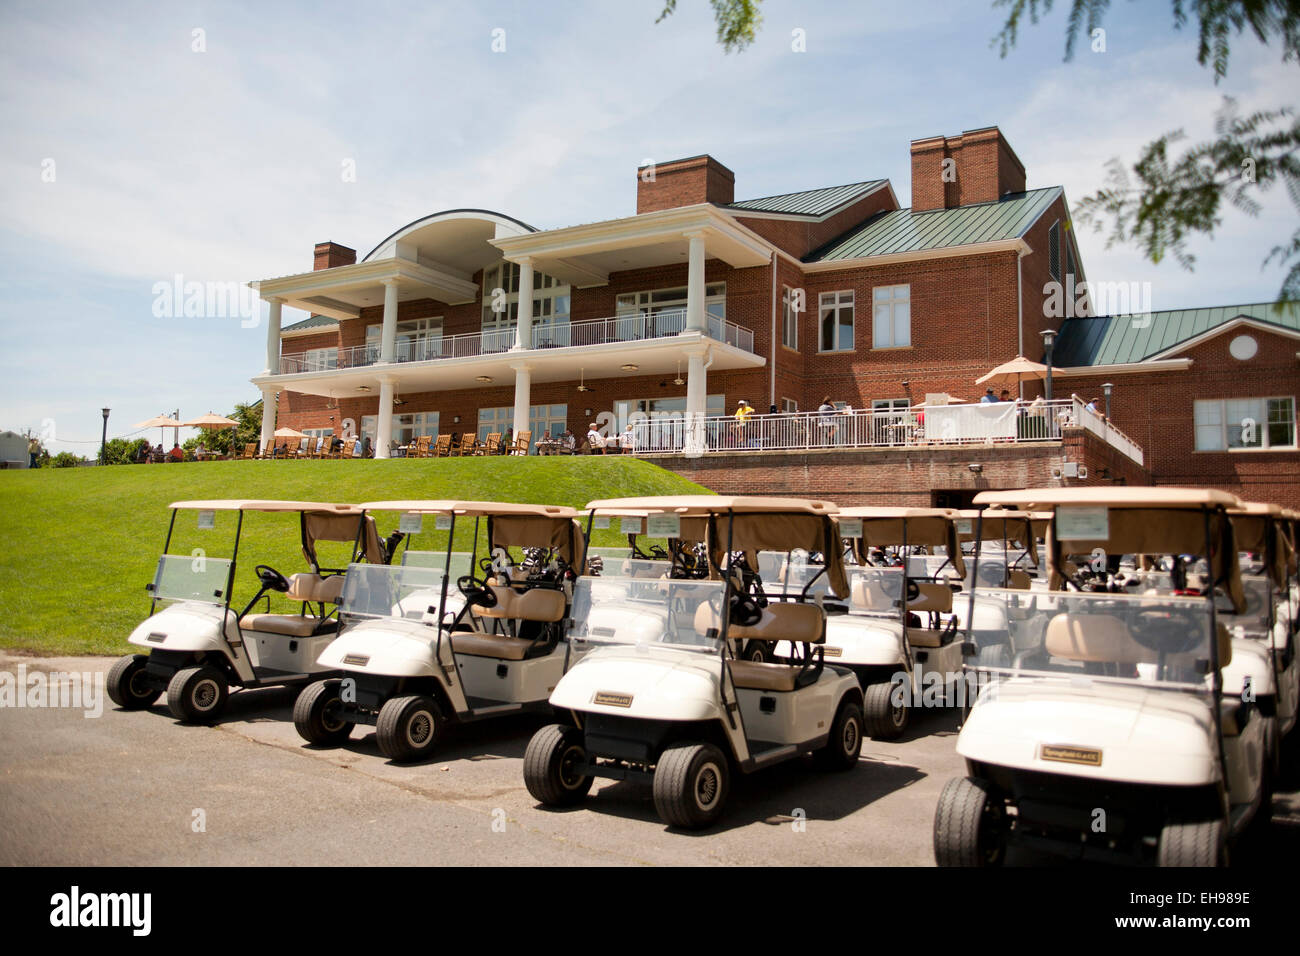 Carts lined up at golf course - USA - Stock Image